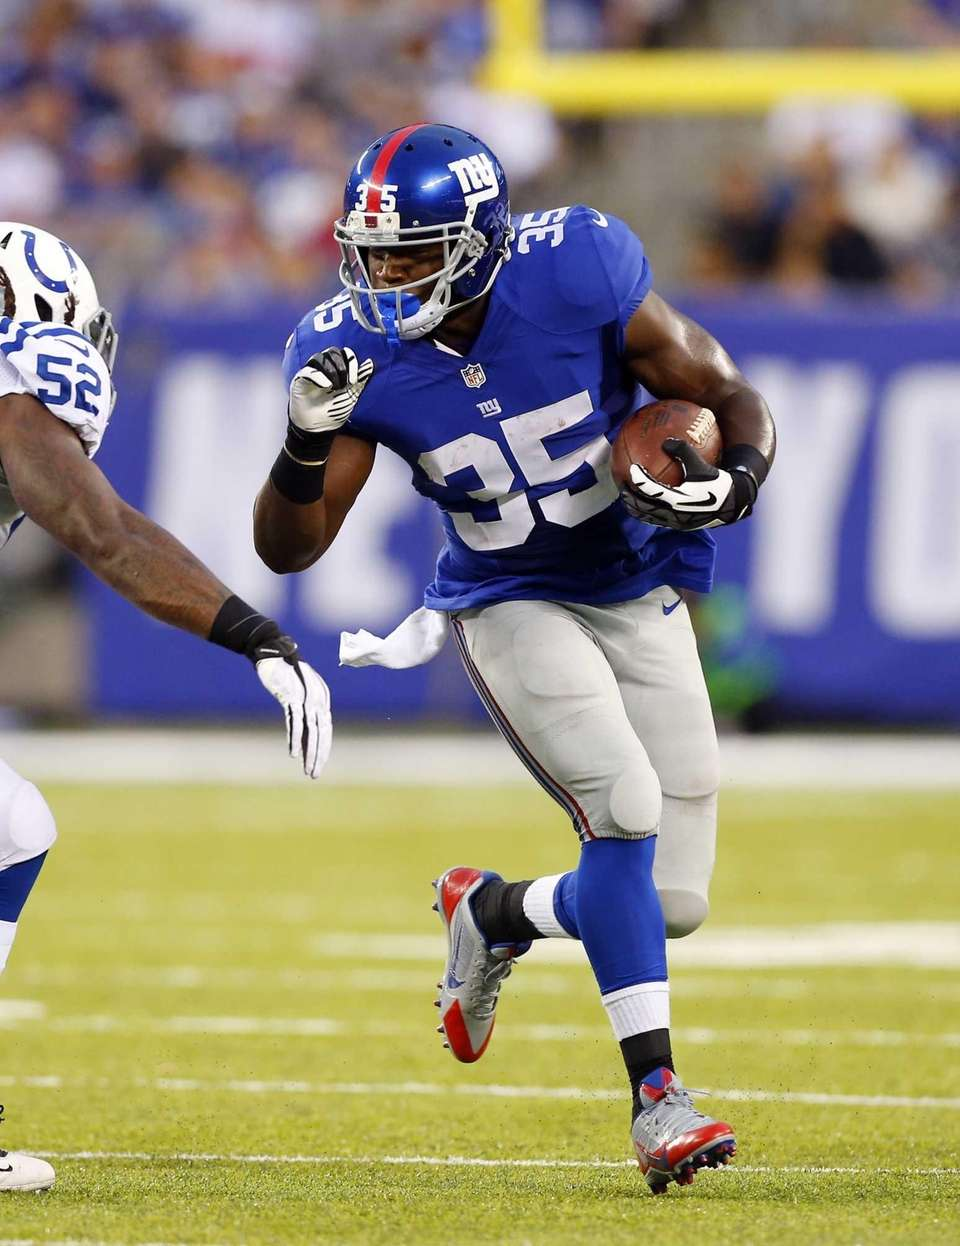 Andre Brown of the Giants runs the ball